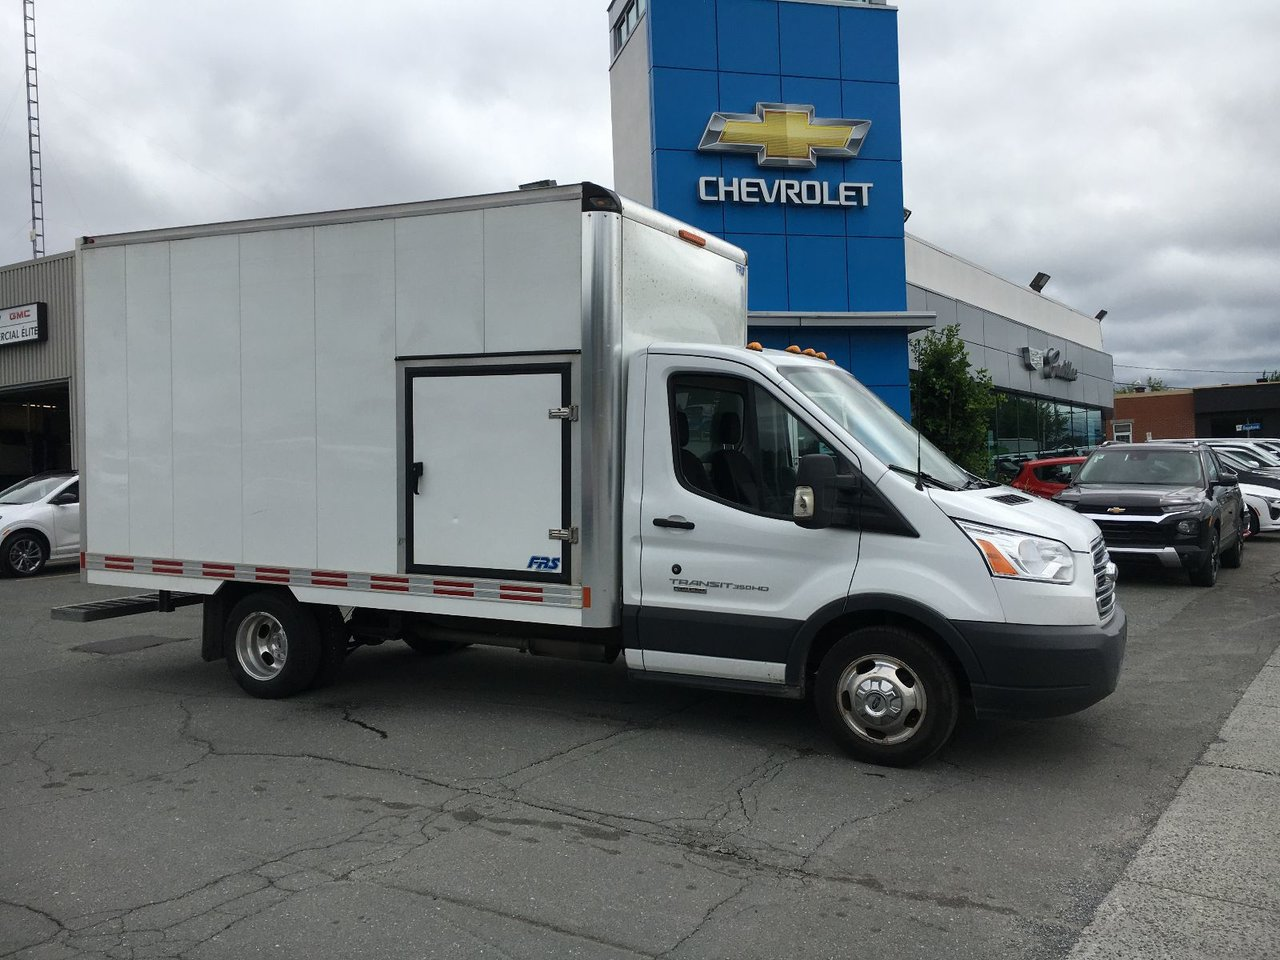 2018 Ford  Transit Chassis Cab Cube